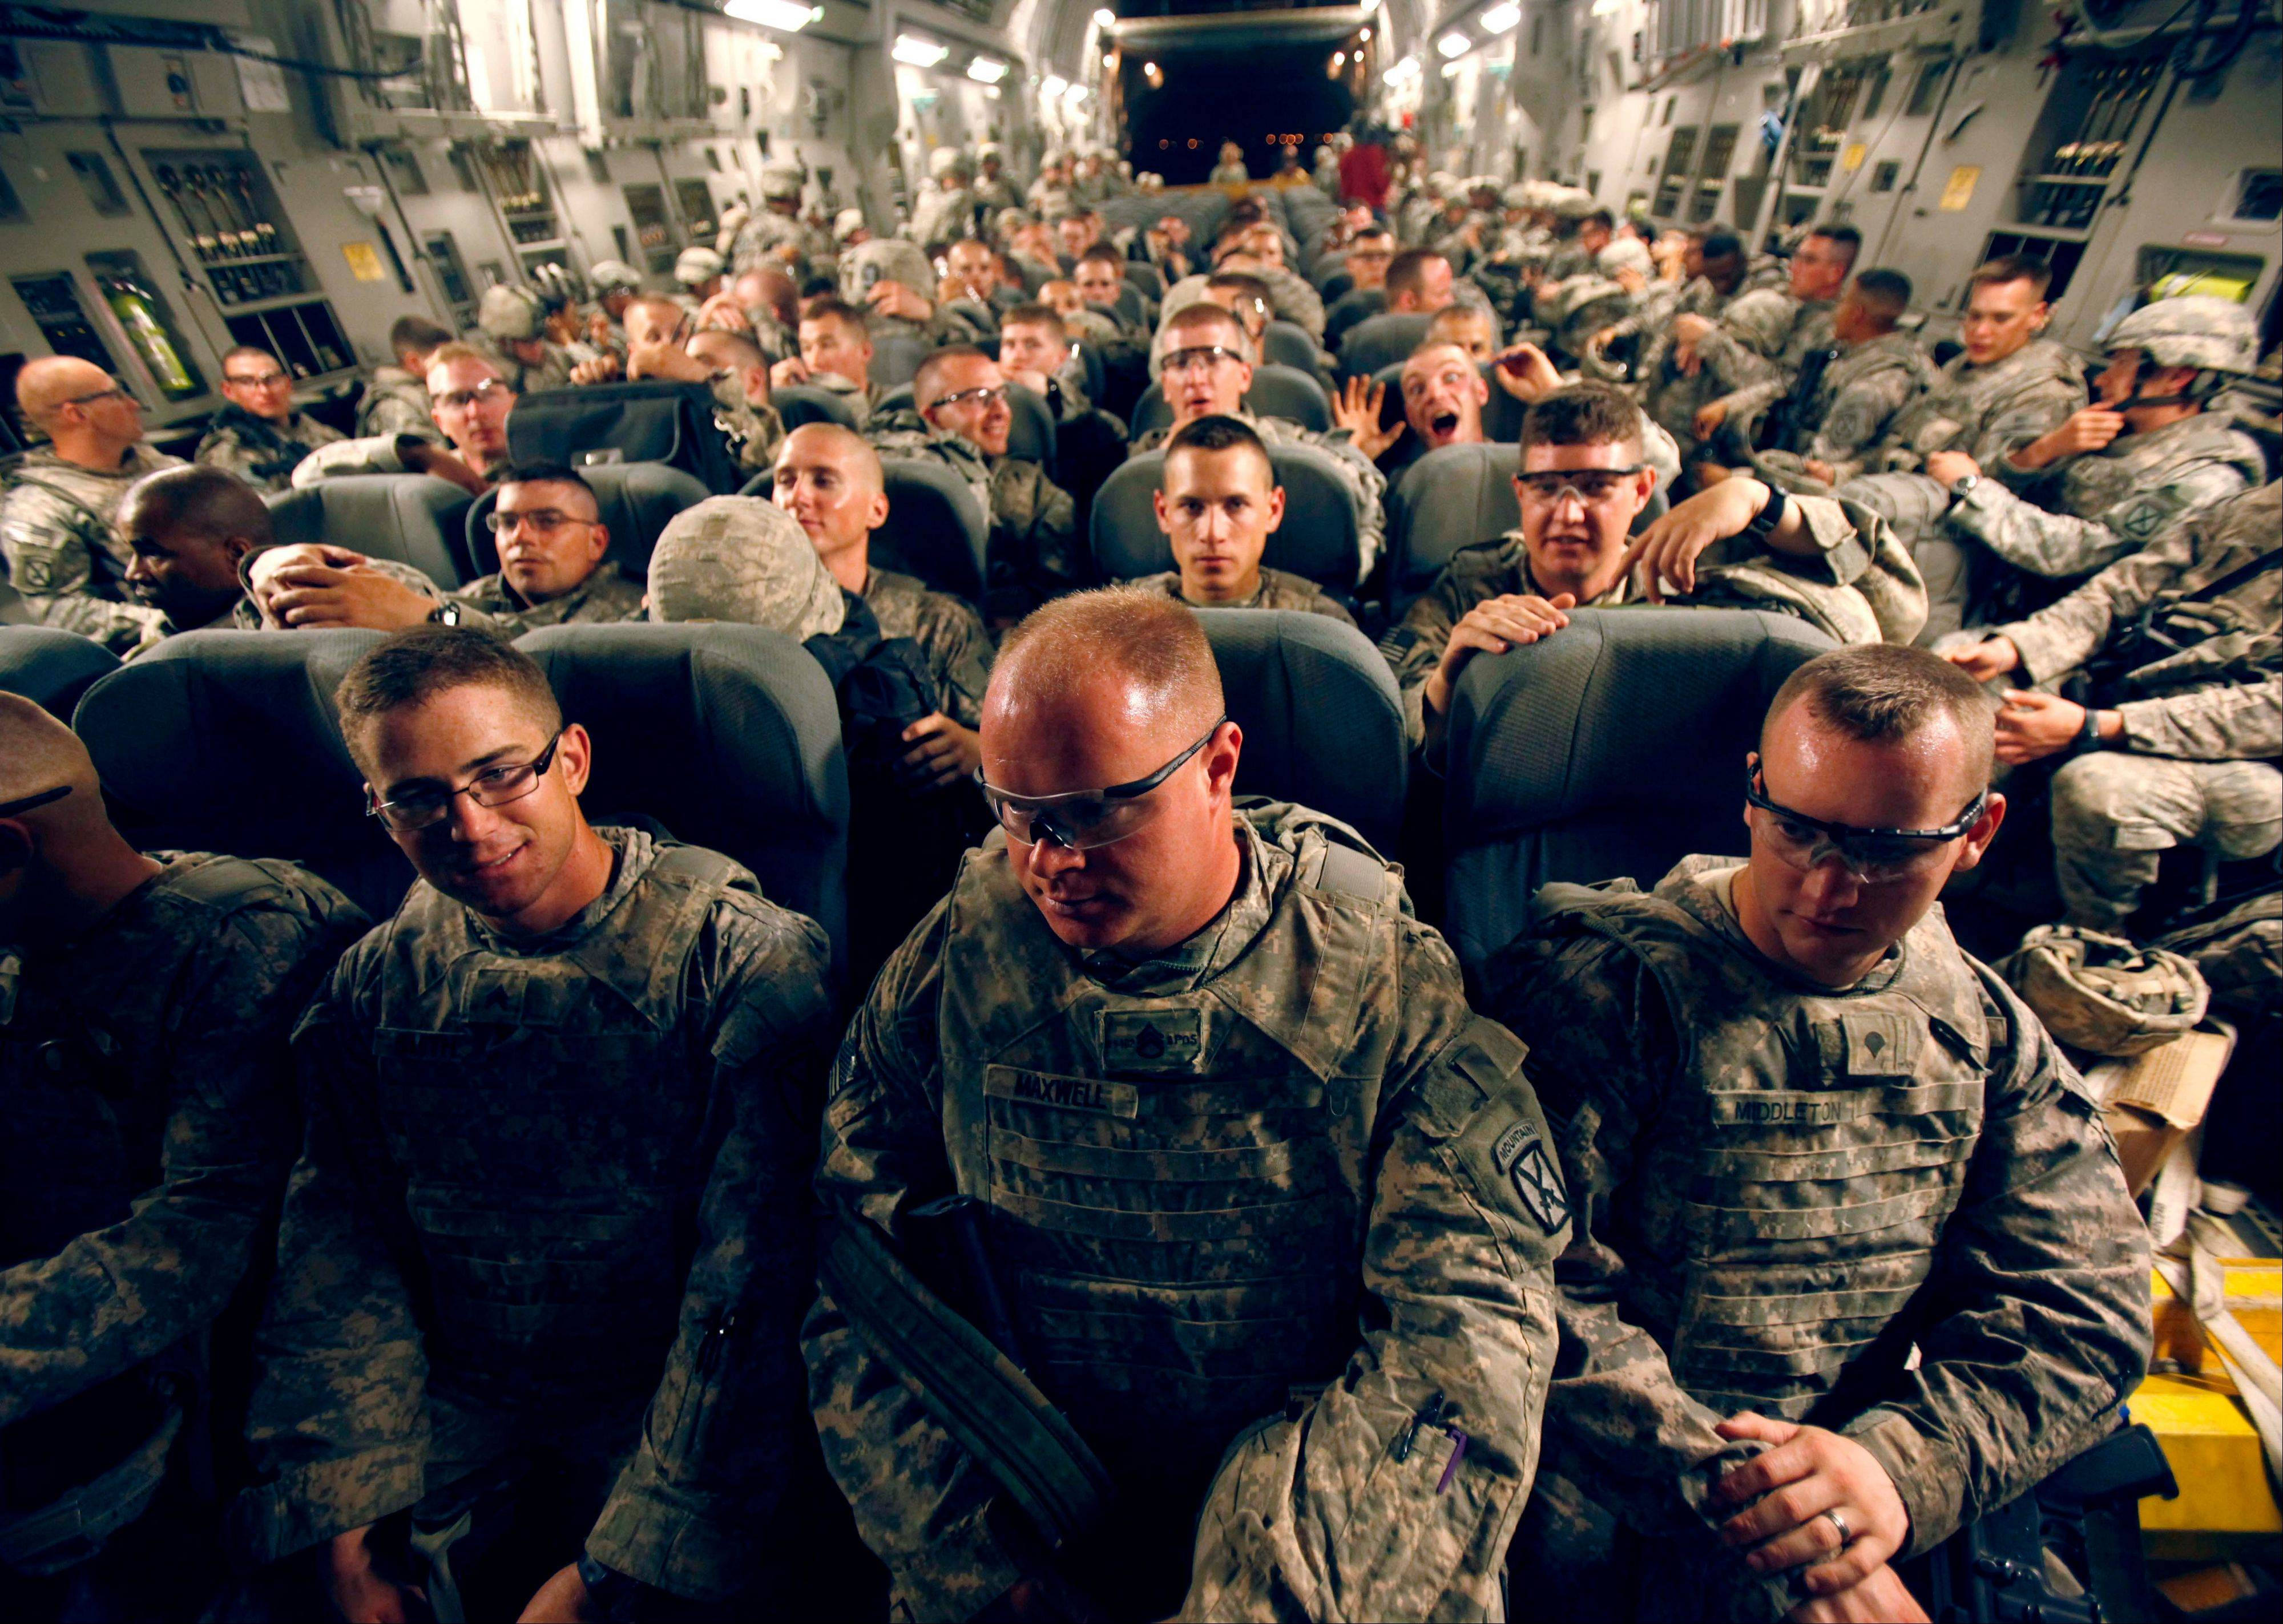 FILE - U.S. Army soldiers from 2nd Brigade, 10th Mountain Division are seated aboard a C-17 aircraft at Baghdad International Airport en route back to the United States on Tuesday, July 13, 2010.